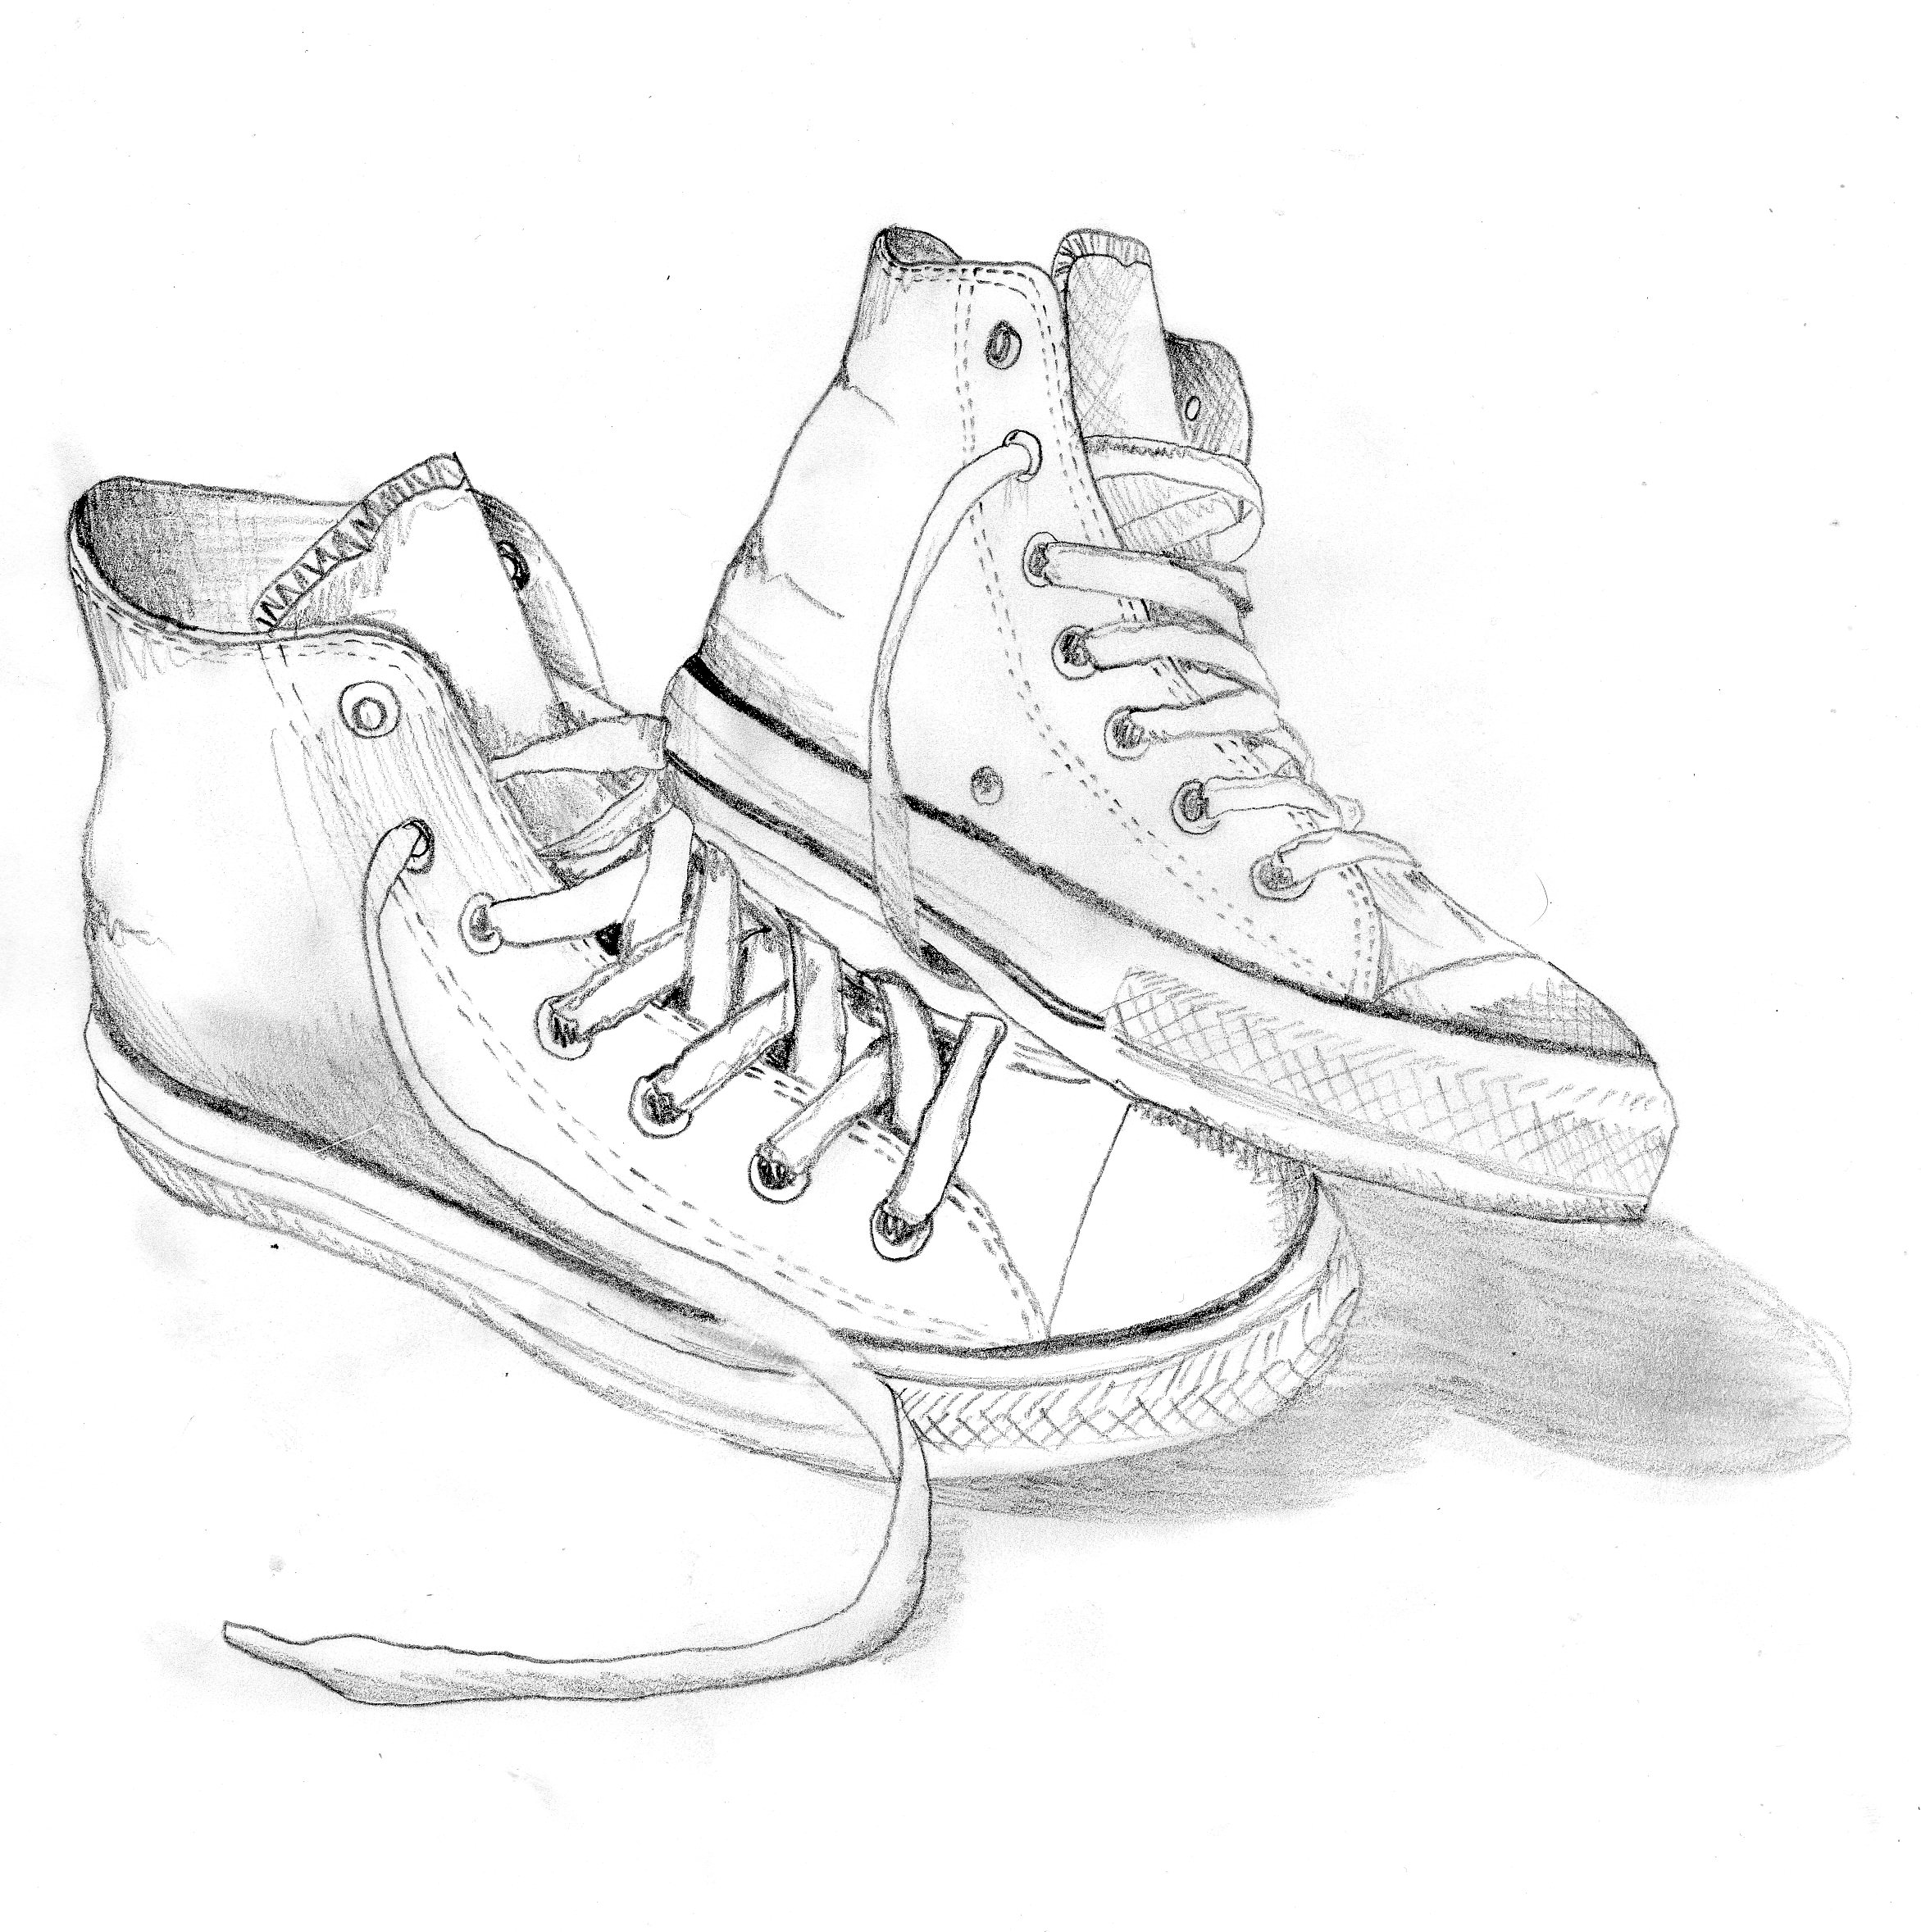 Drawn converse drawing Converse by Sketch Walker Charlotte